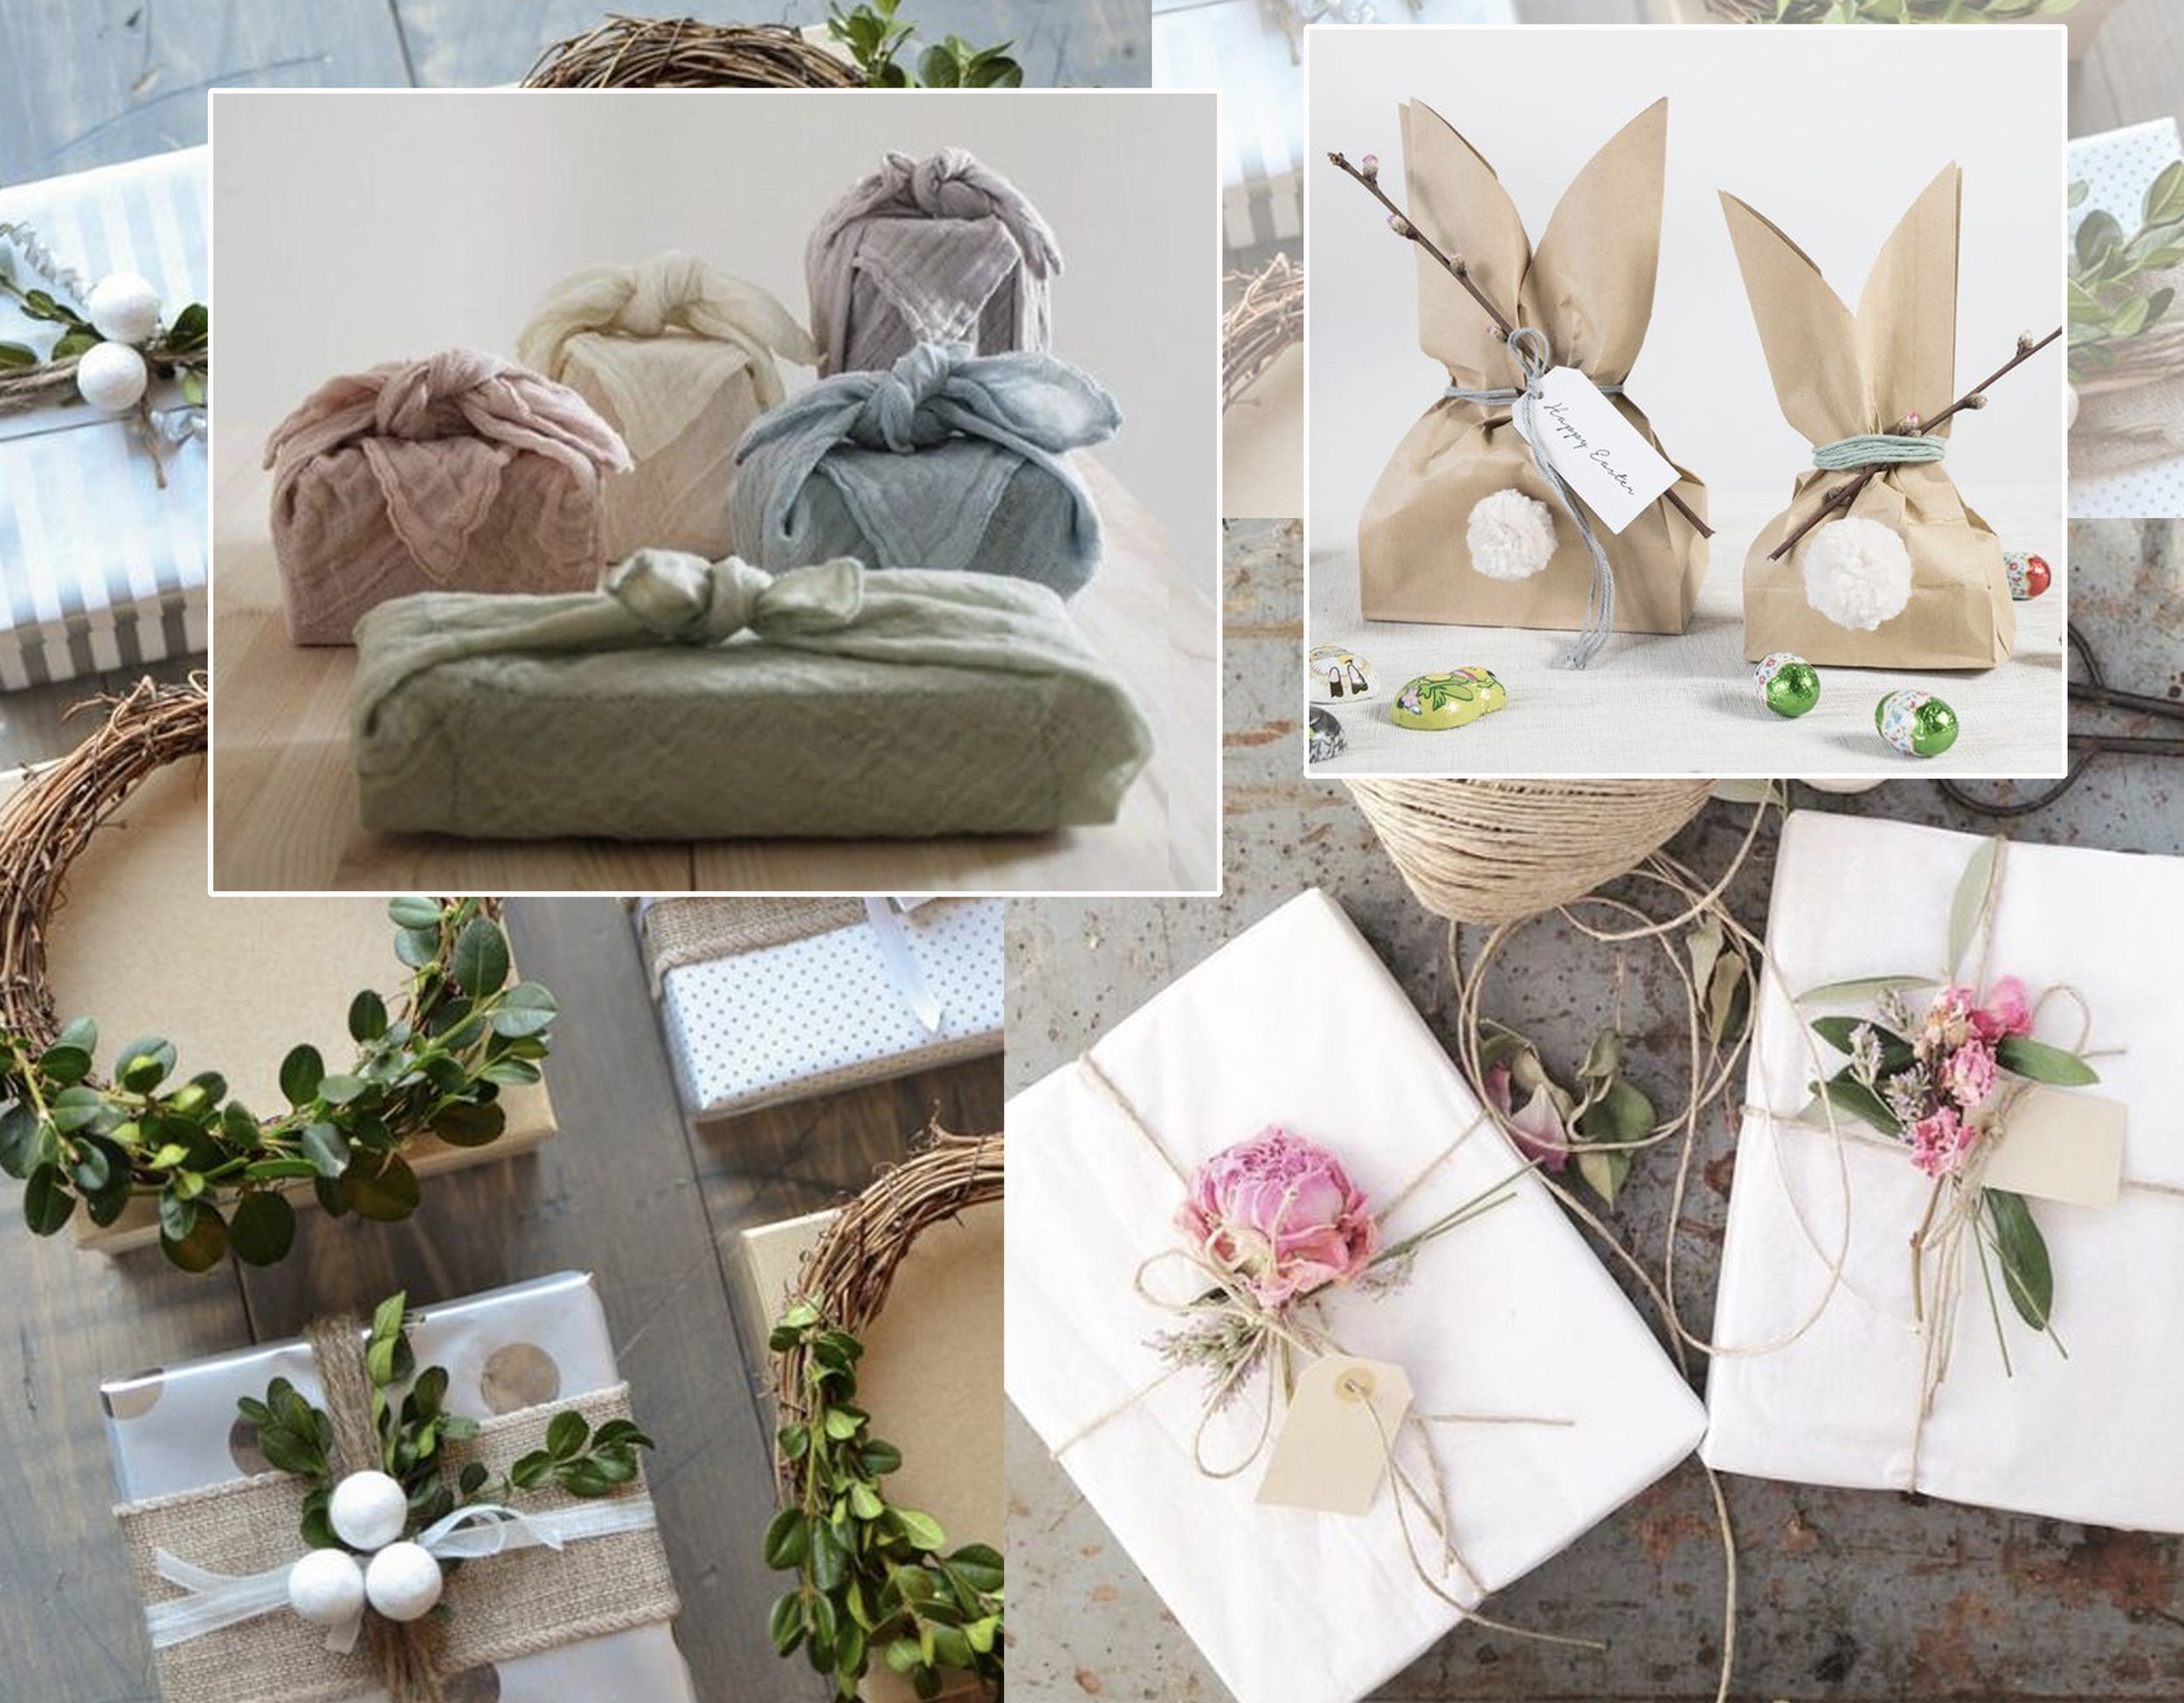 wrapping with fabric via  Hippie in disguise  - green decoration for wrapping via  A Burst of Beautiful  - using flowers for gift wrapping  Pinterest - bunny goody bag via  Sostrene Grene